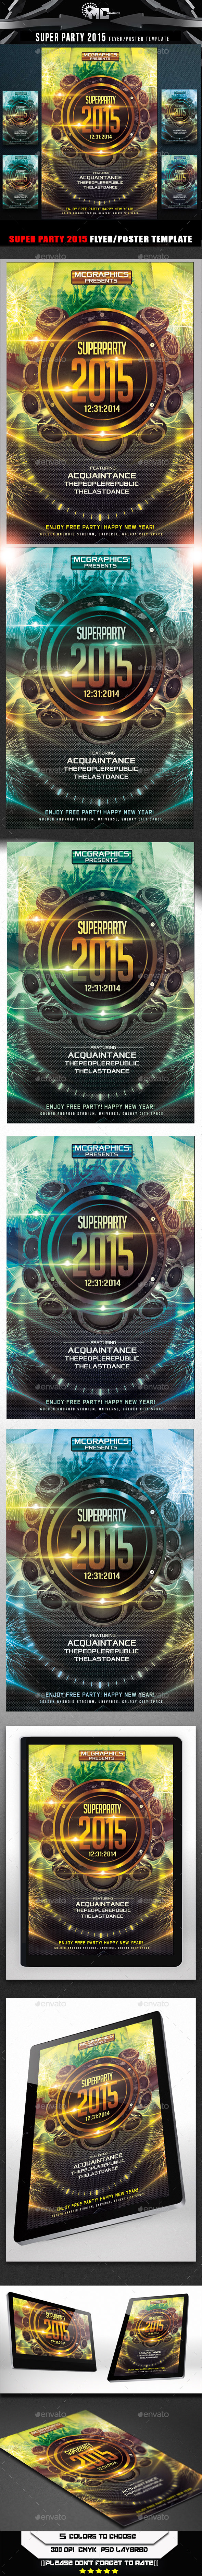 GraphicRiver Super Party 2015 Flyer Template 9589457